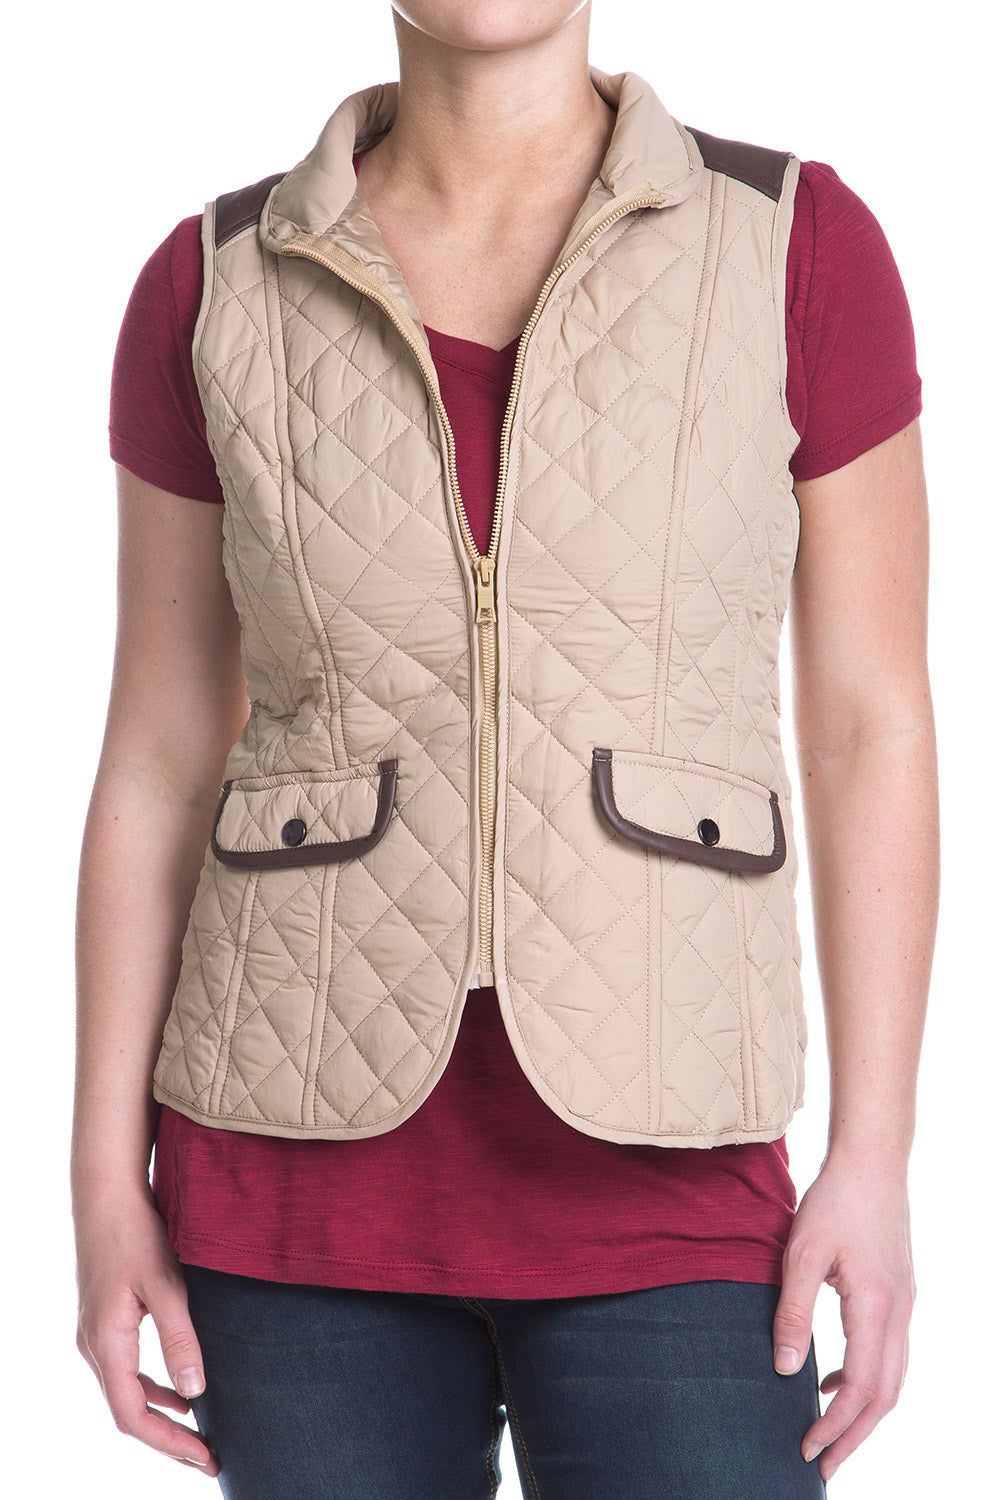 Type 3 Snap To It Vest